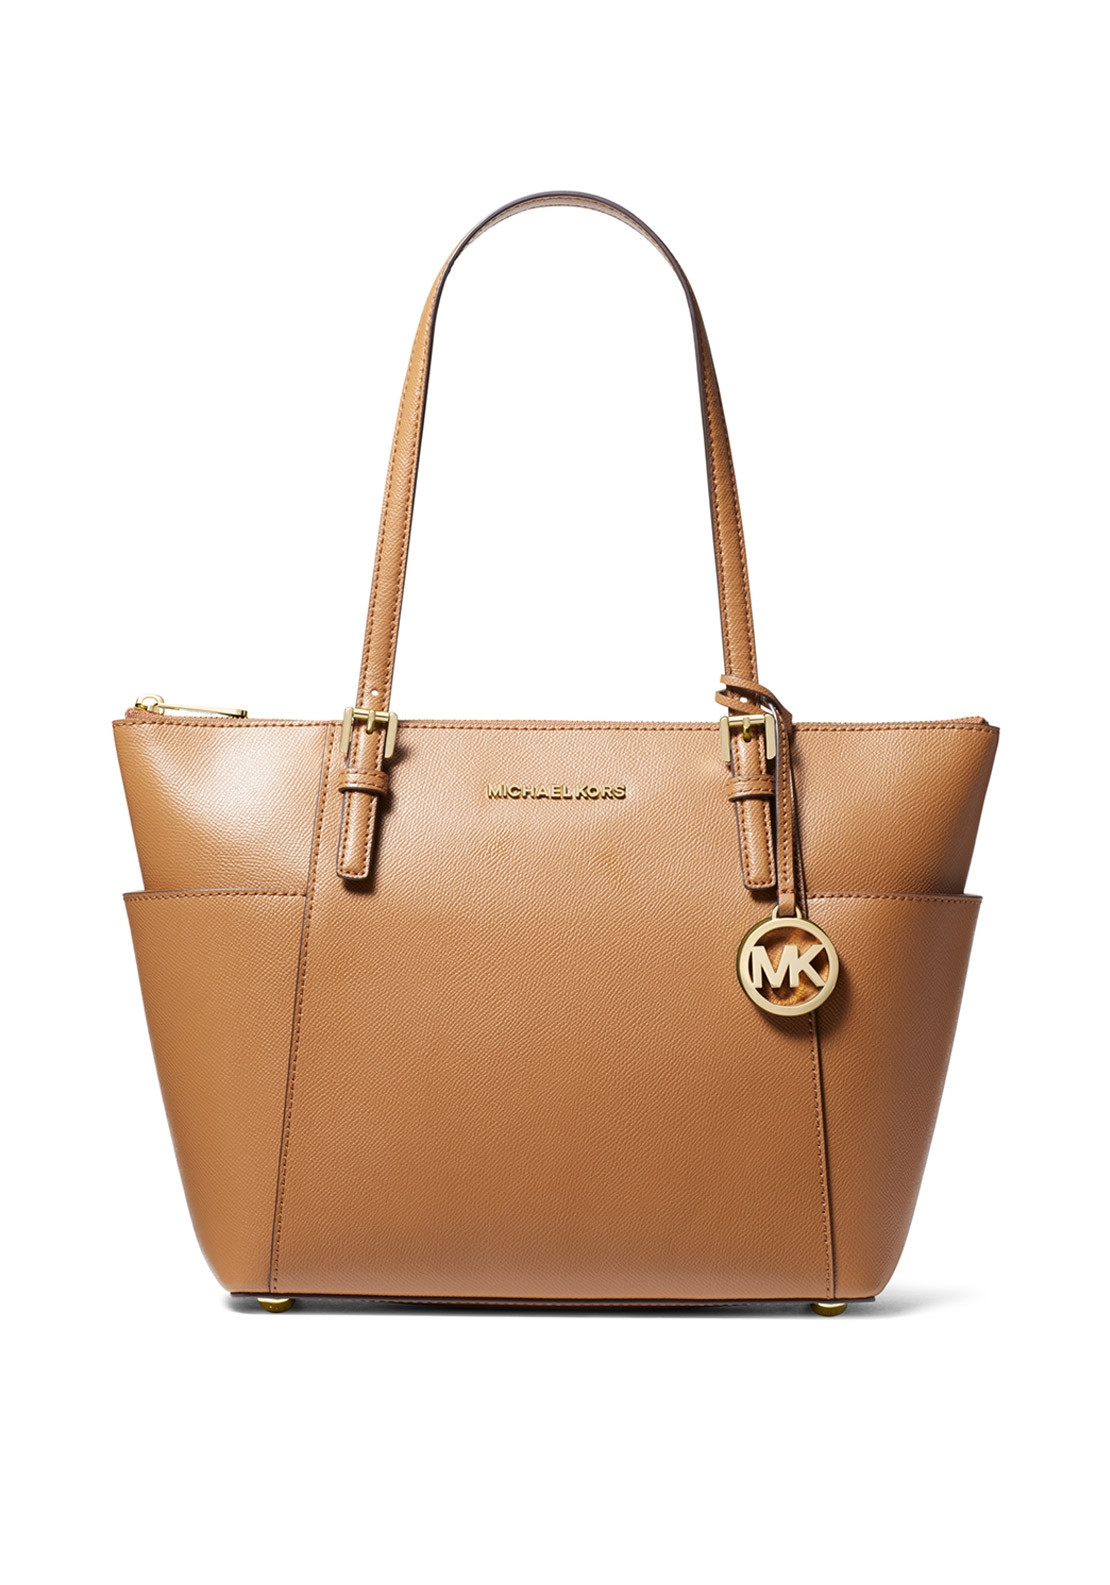 caee2bbeb1e9 MICHAEL Michael Kors Jet Set Leather Tote Bag, Acorn. Be the first to  review this product